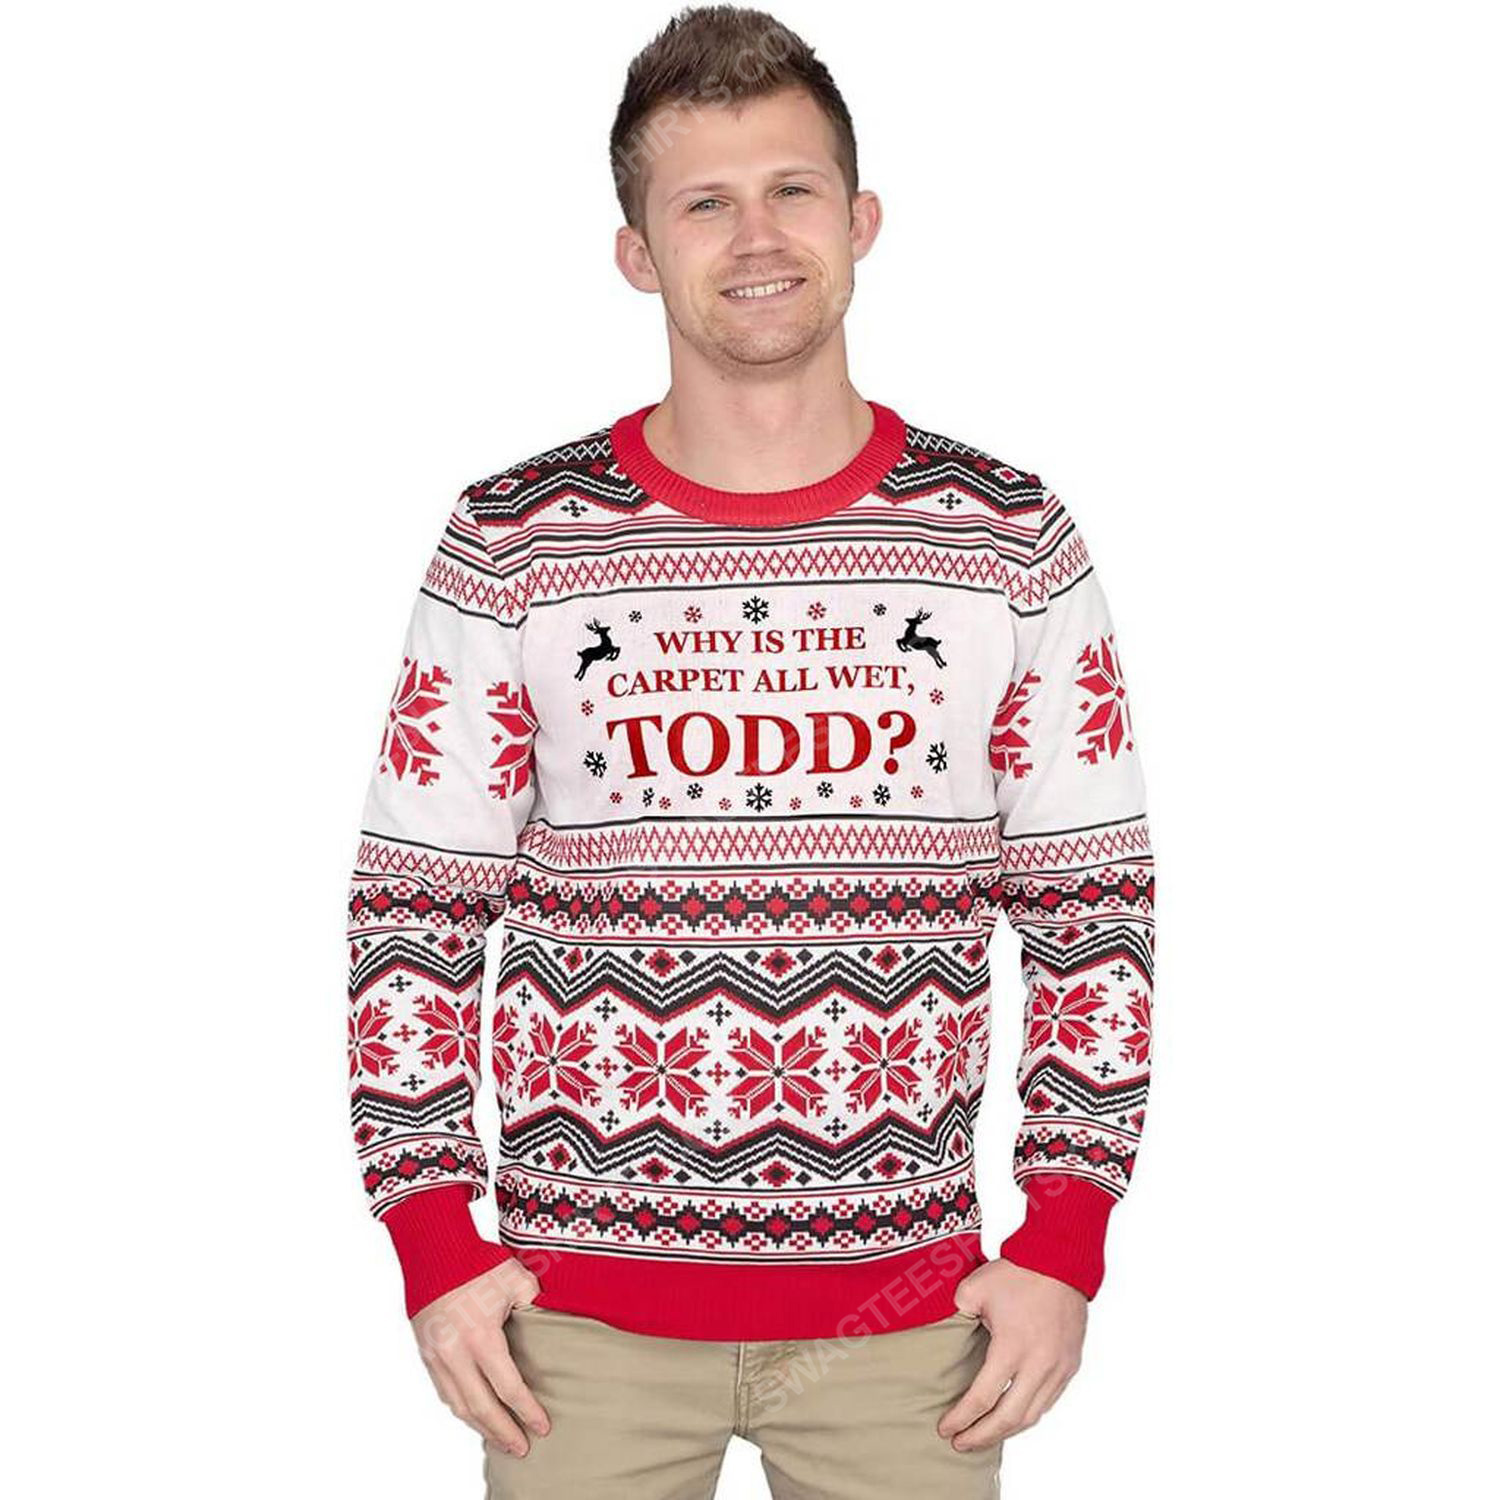 Why is the carpet all wet todd full print ugly christmas sweater 3